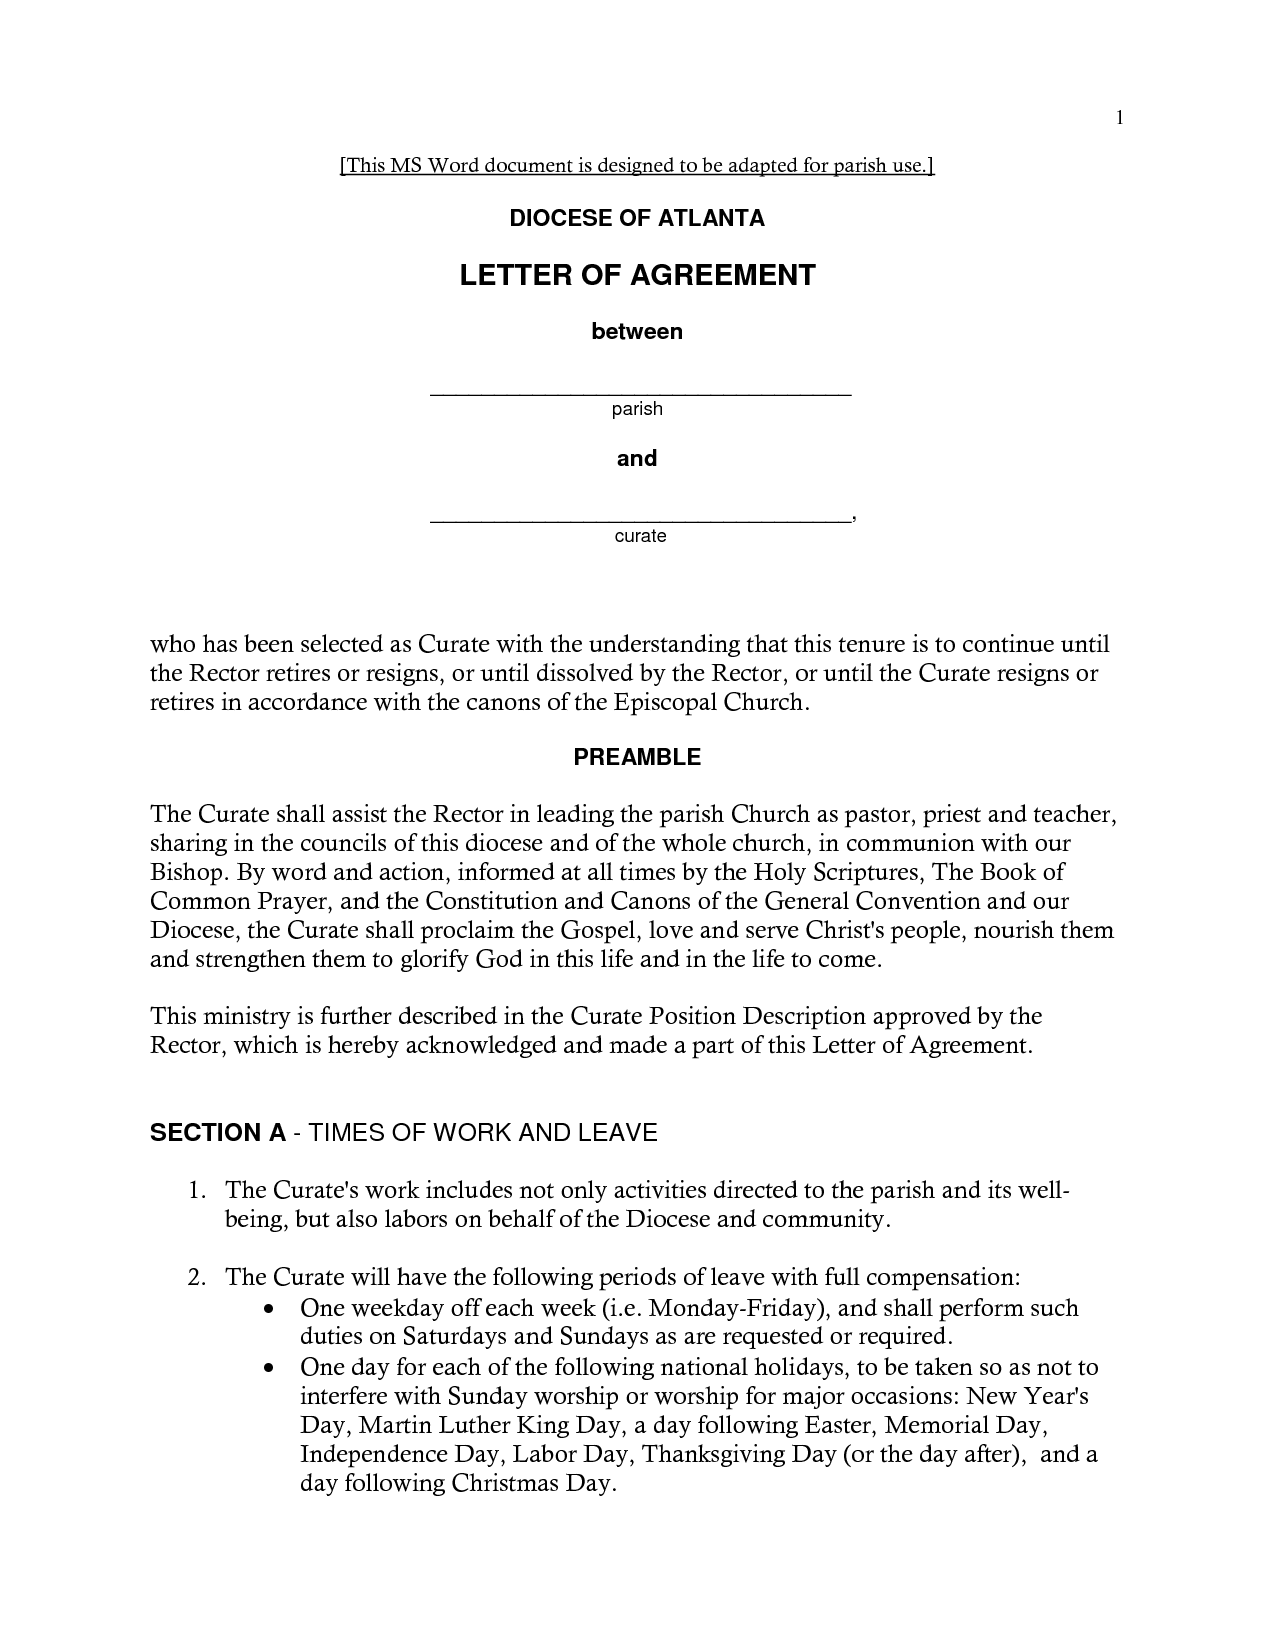 Legal Loan Agreement Between Friends Sample Loan Agreement Letter Loan Agreement  Letter Sample